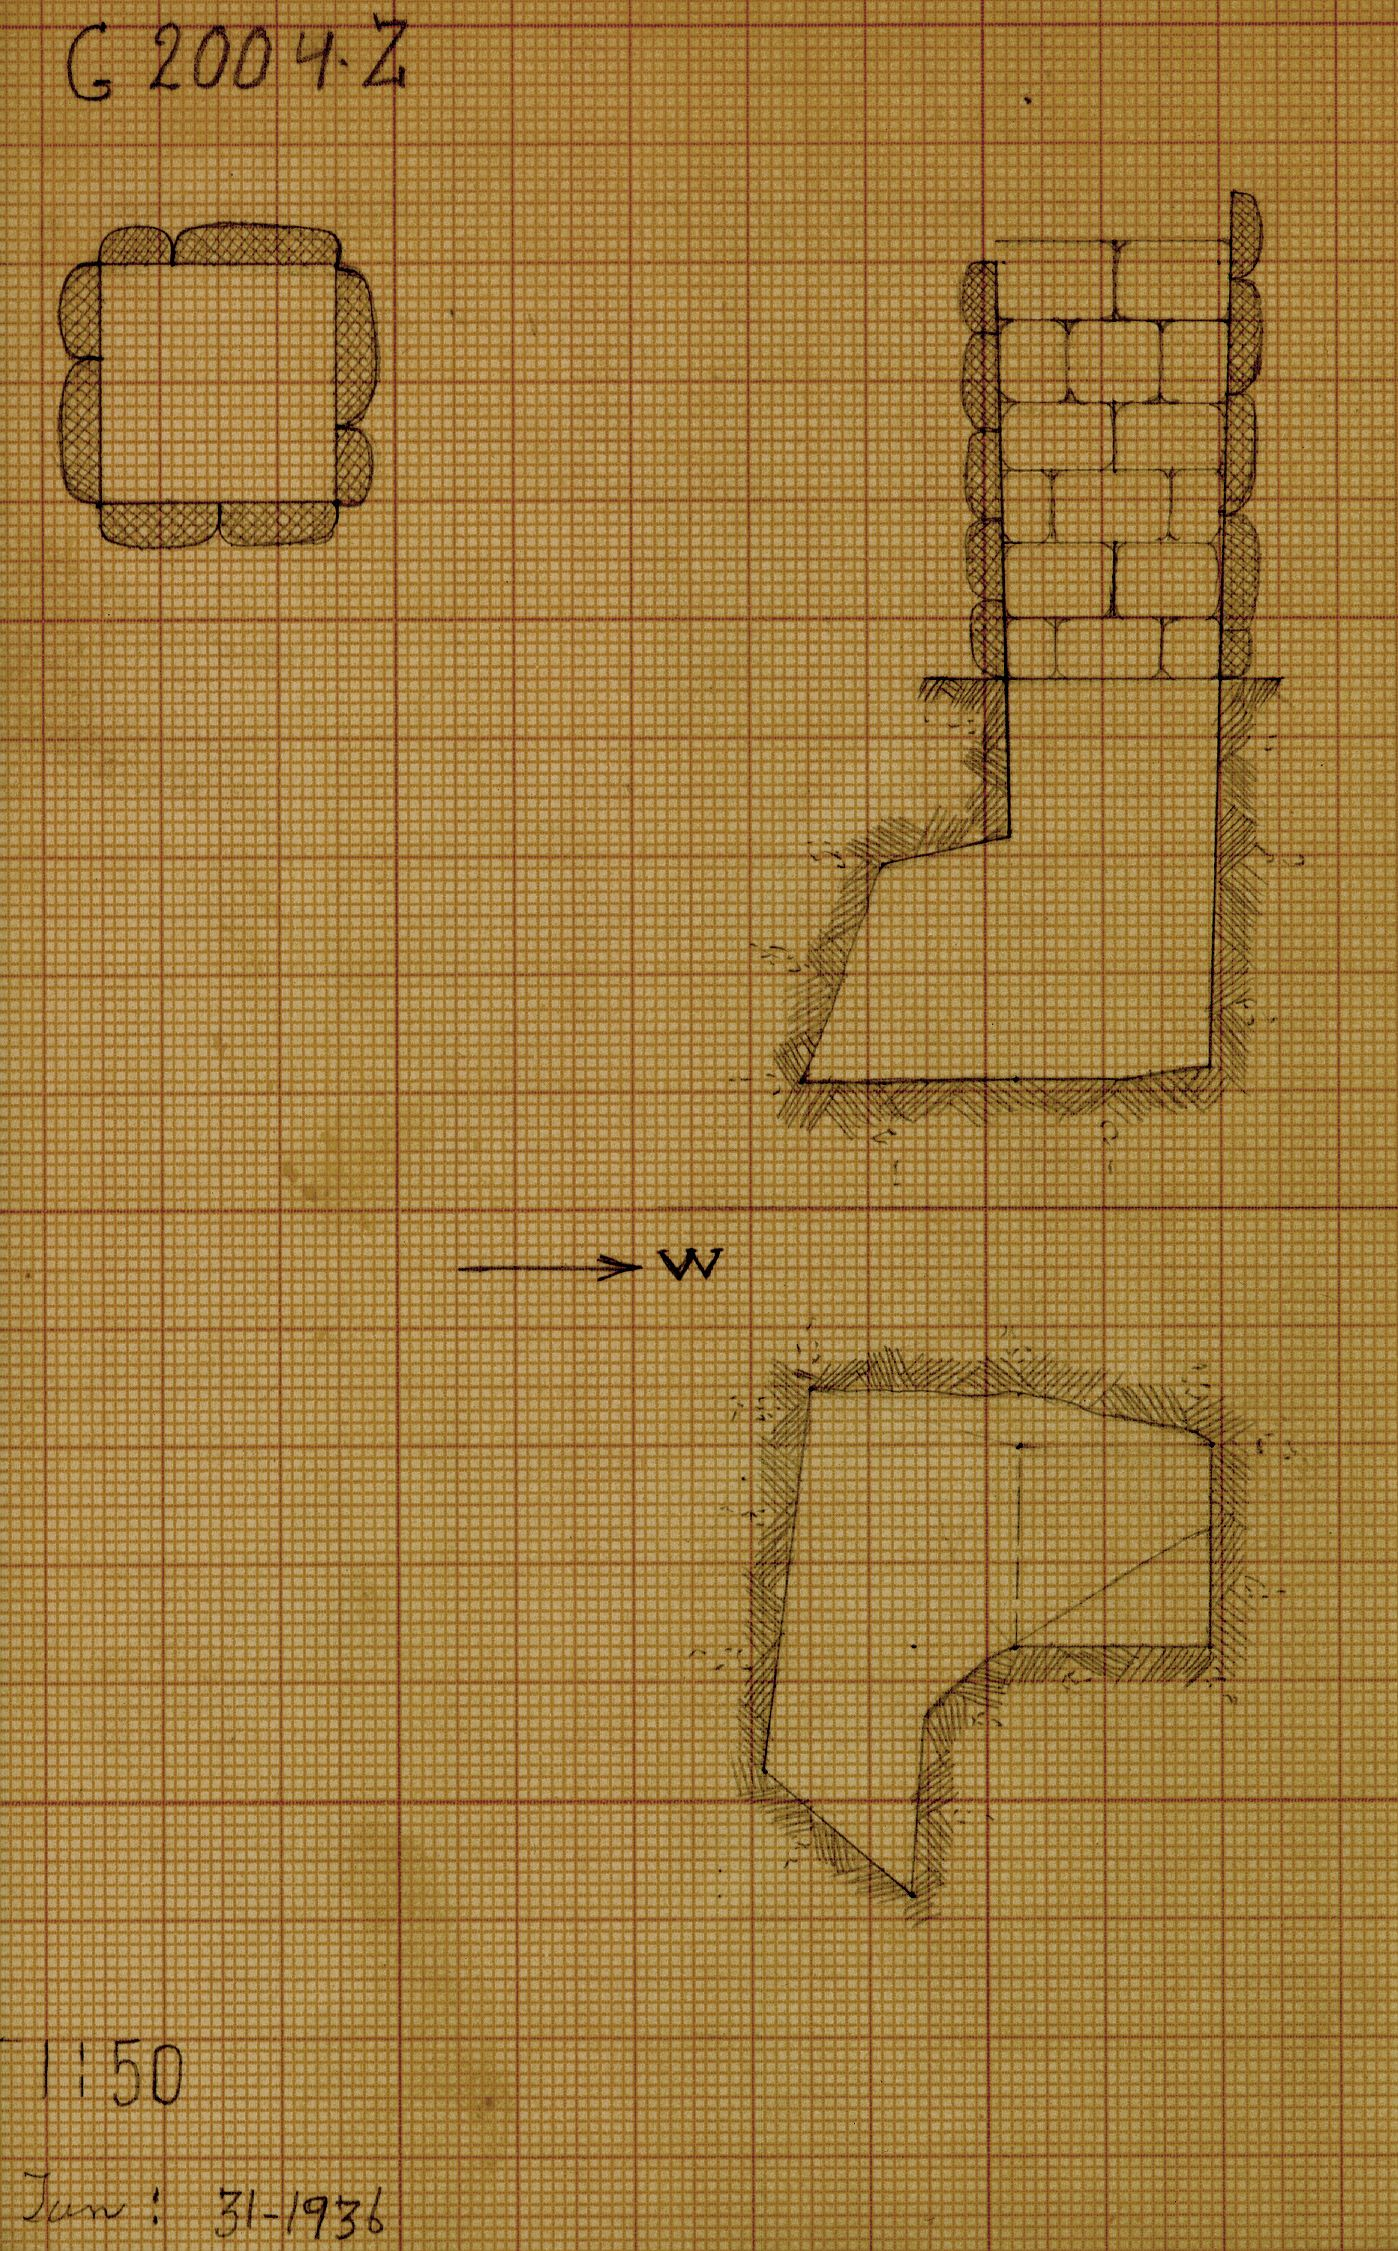 Maps and plans: G 2004, Shaft Z